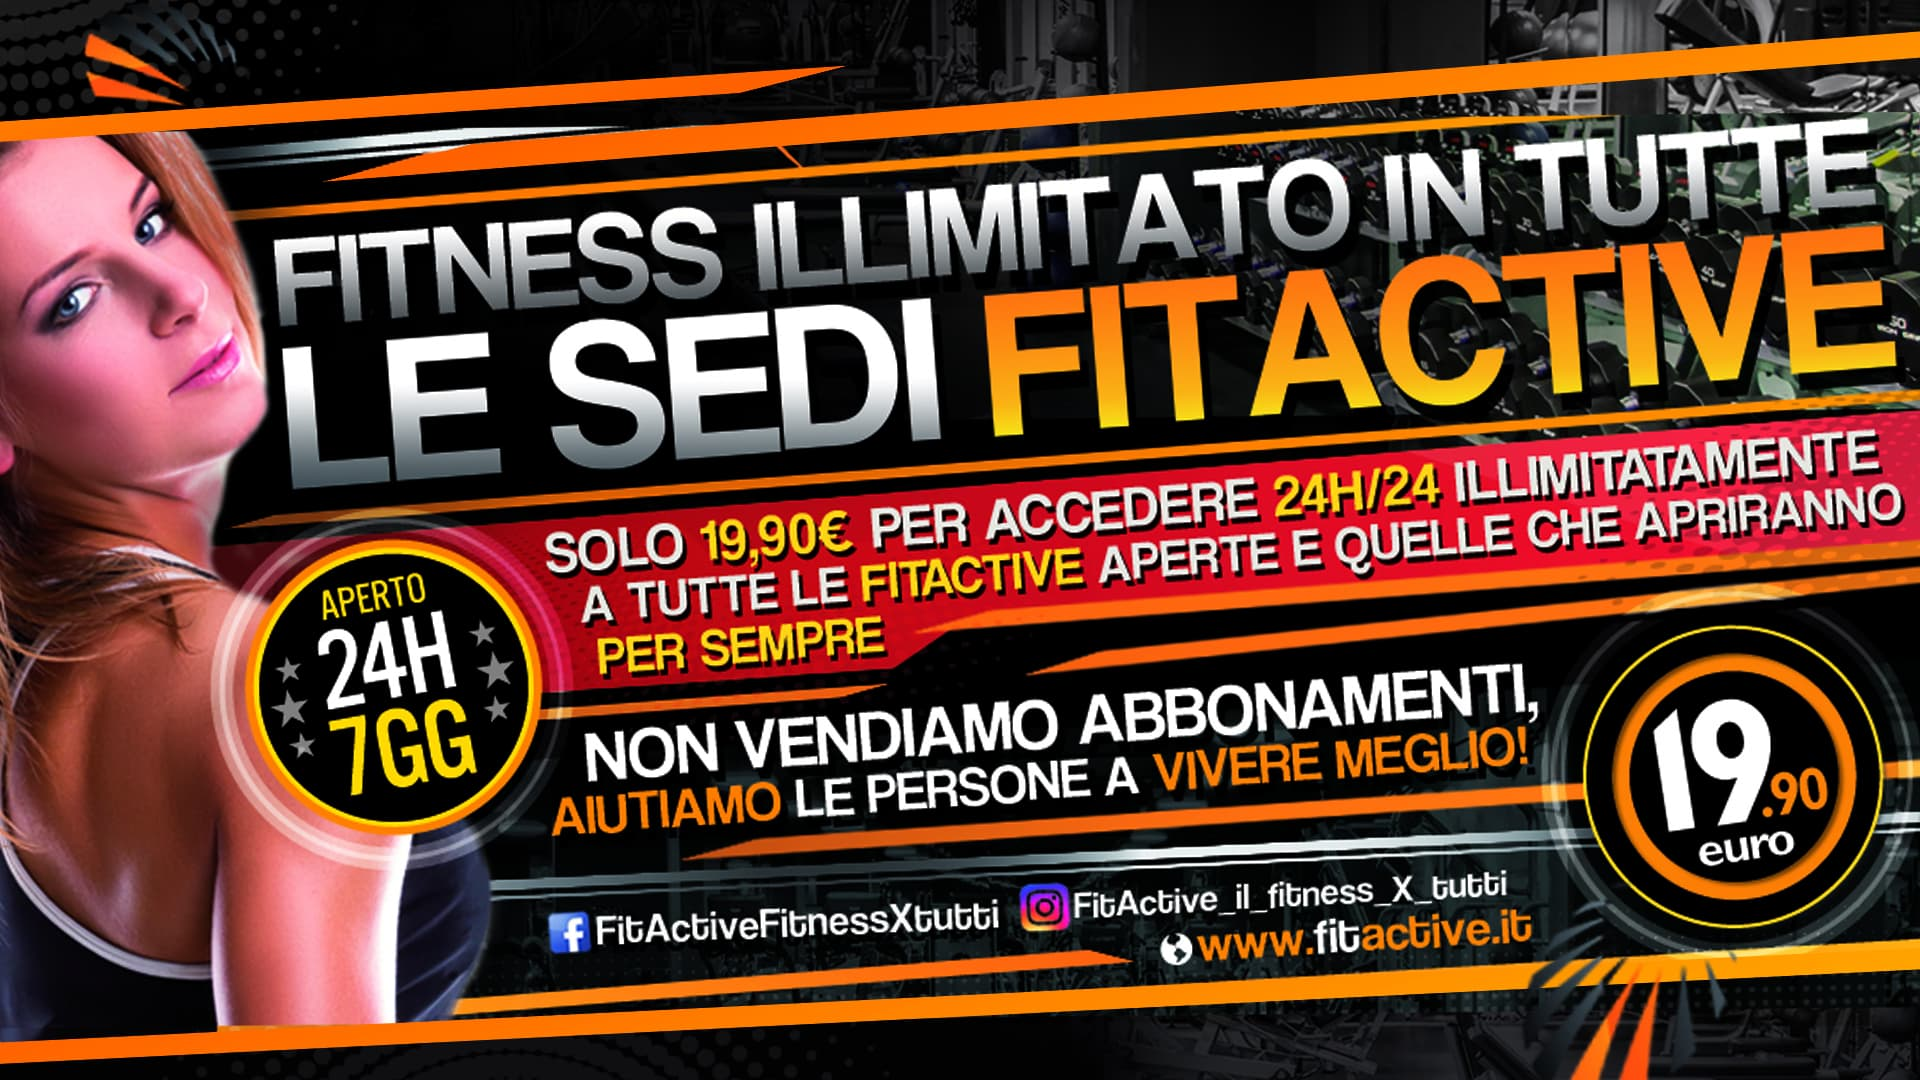 FitActive Fitness Illimitato per sempre!